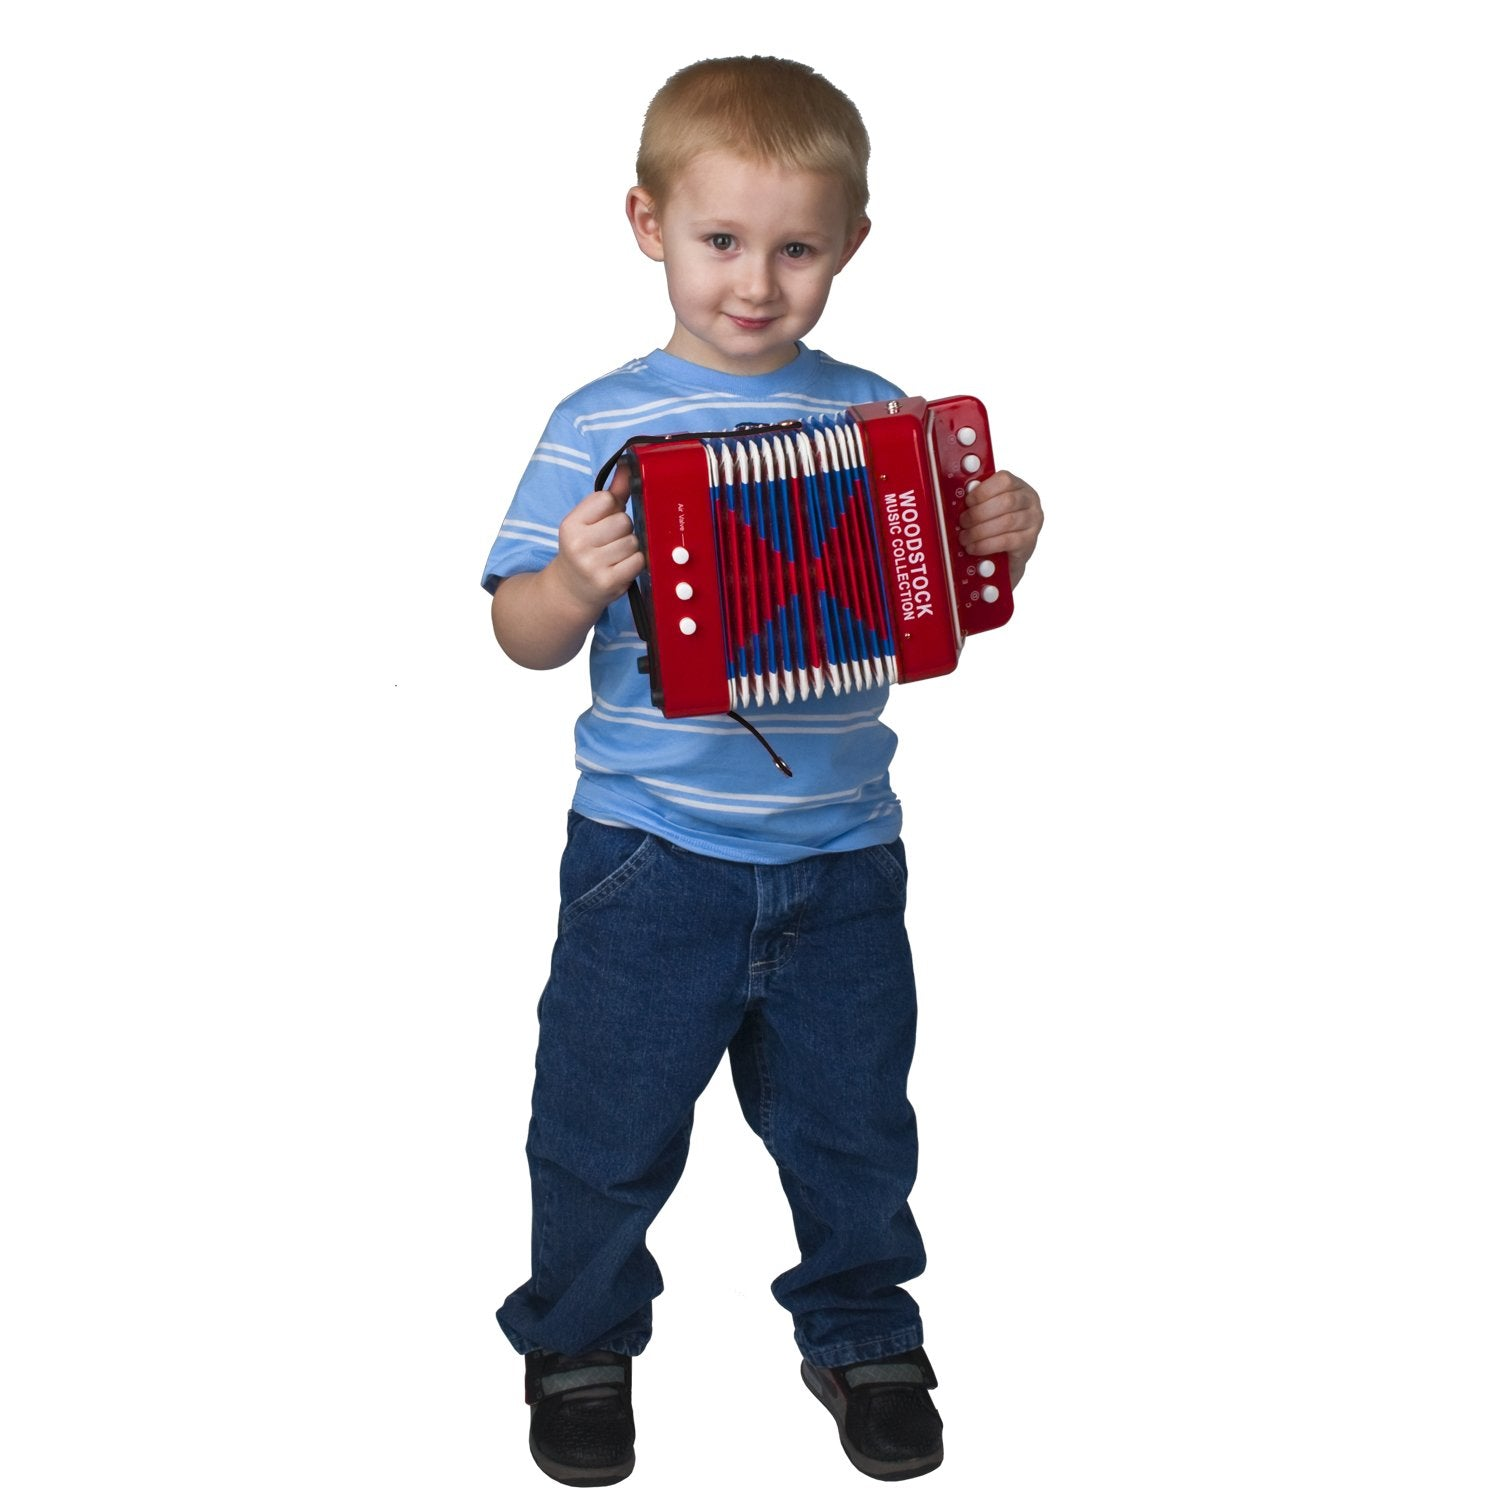 Woodstock Kid's Accordion lifestyle image